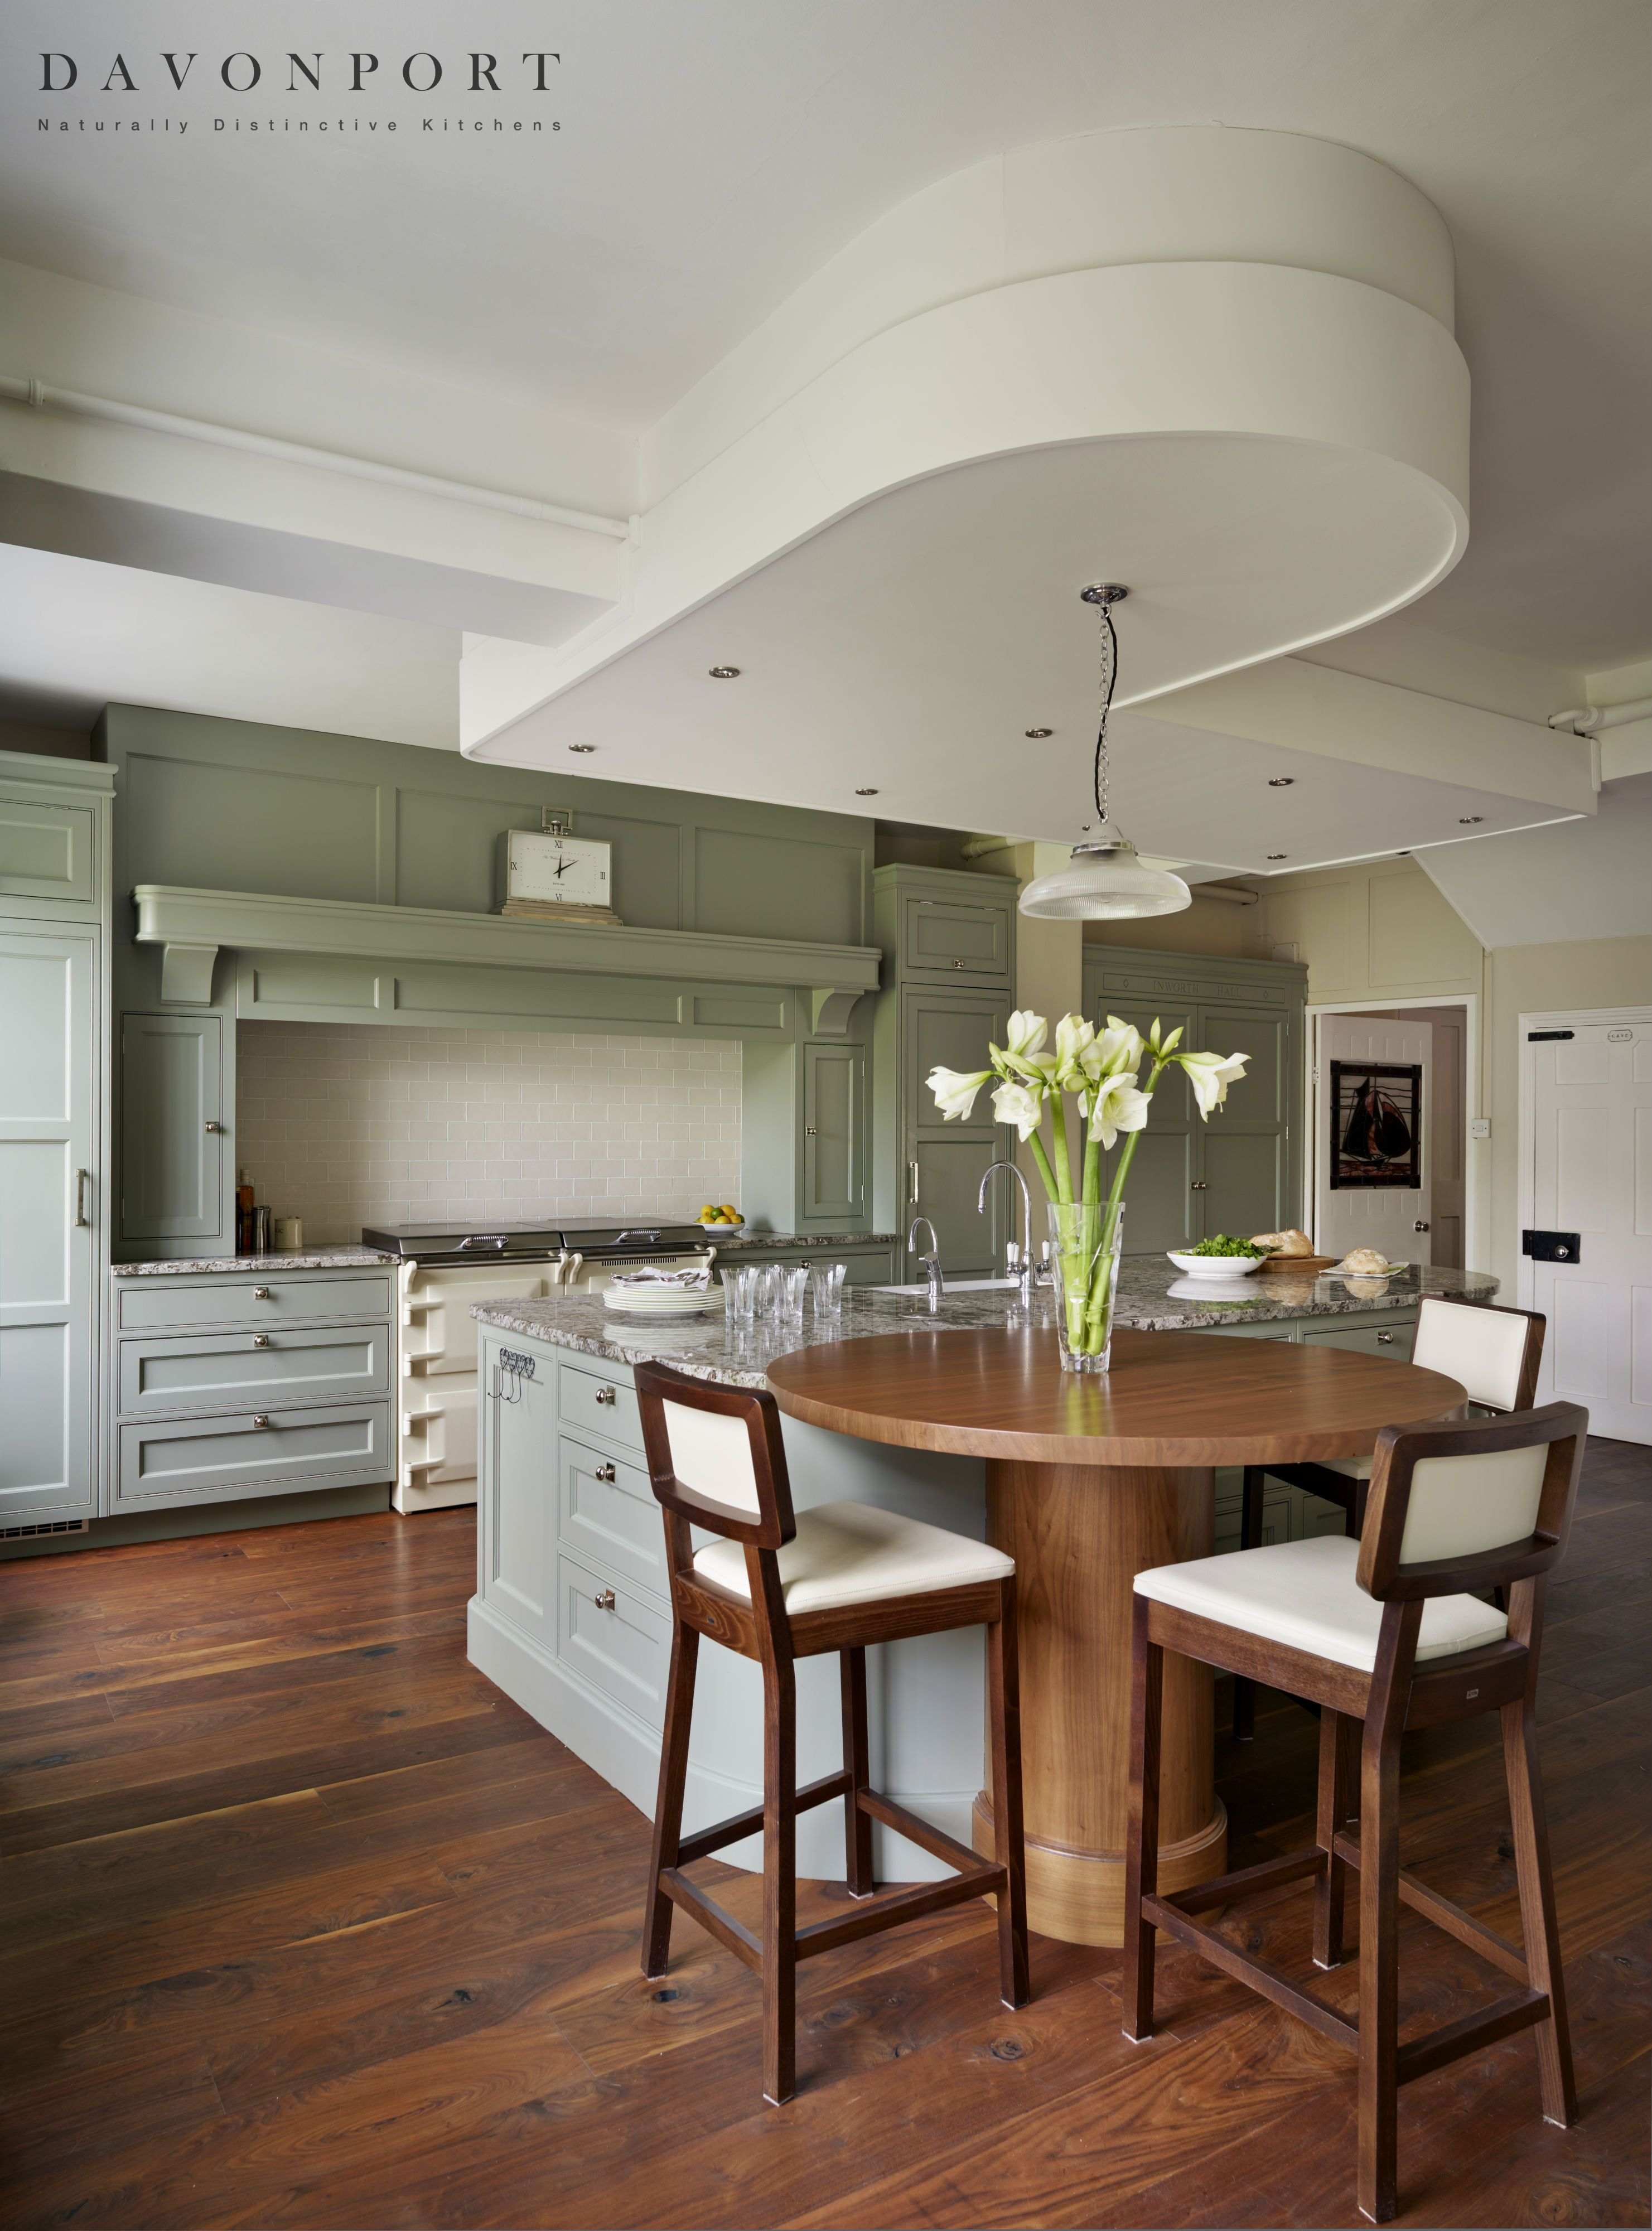 The Warmth Of Walnut Table Matches Floorboards Used